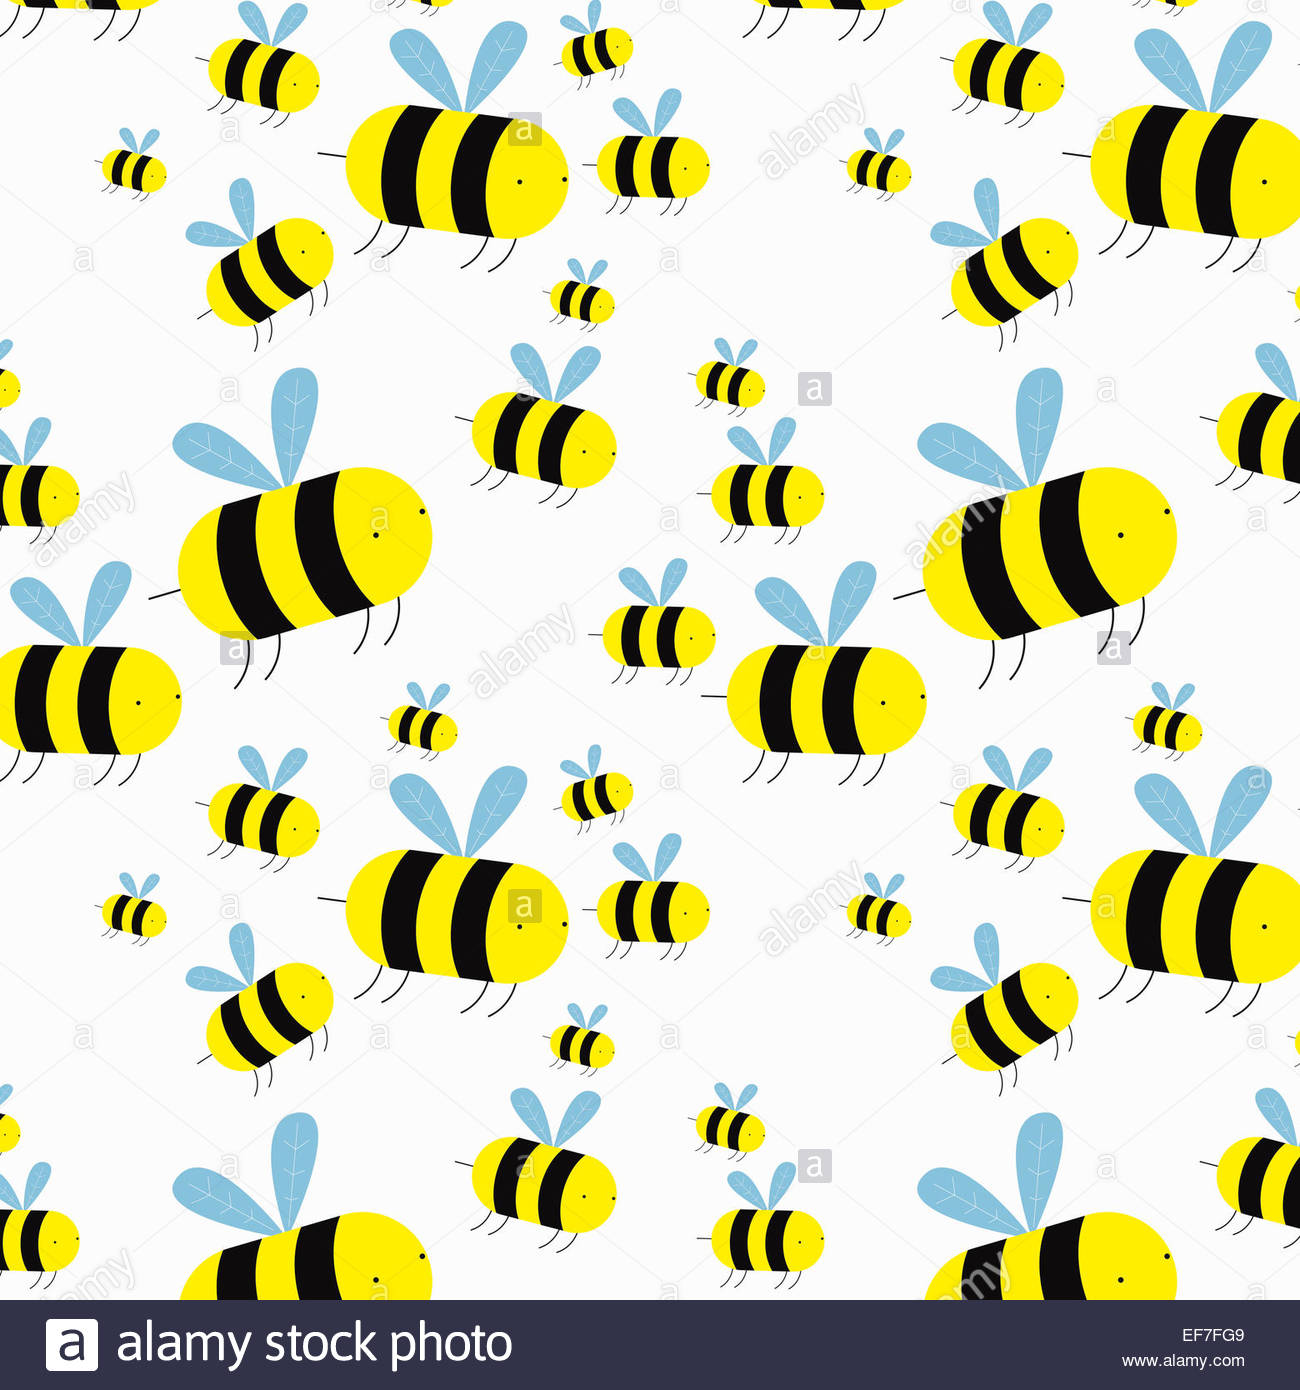 Image result for bees cartoon